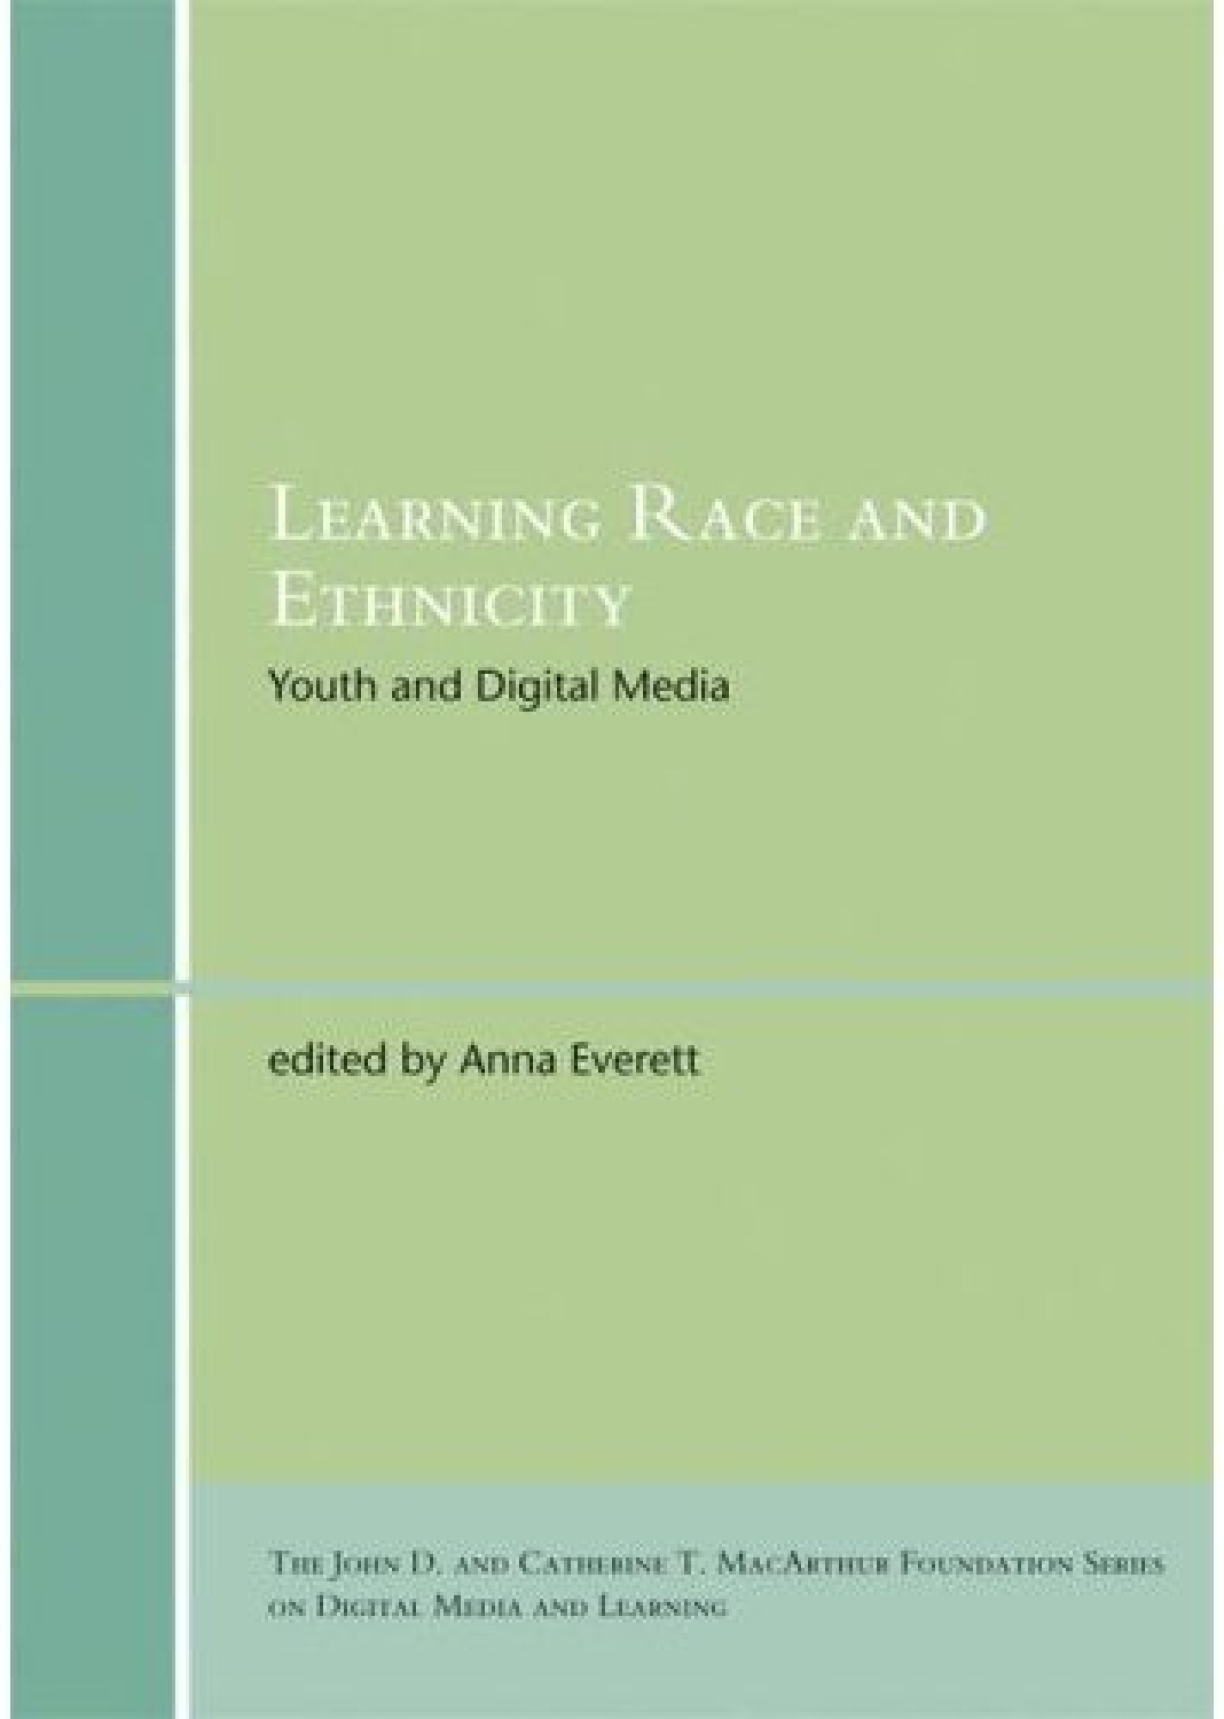 Learning Race and Ethnicity: Hip-Hop 2.0